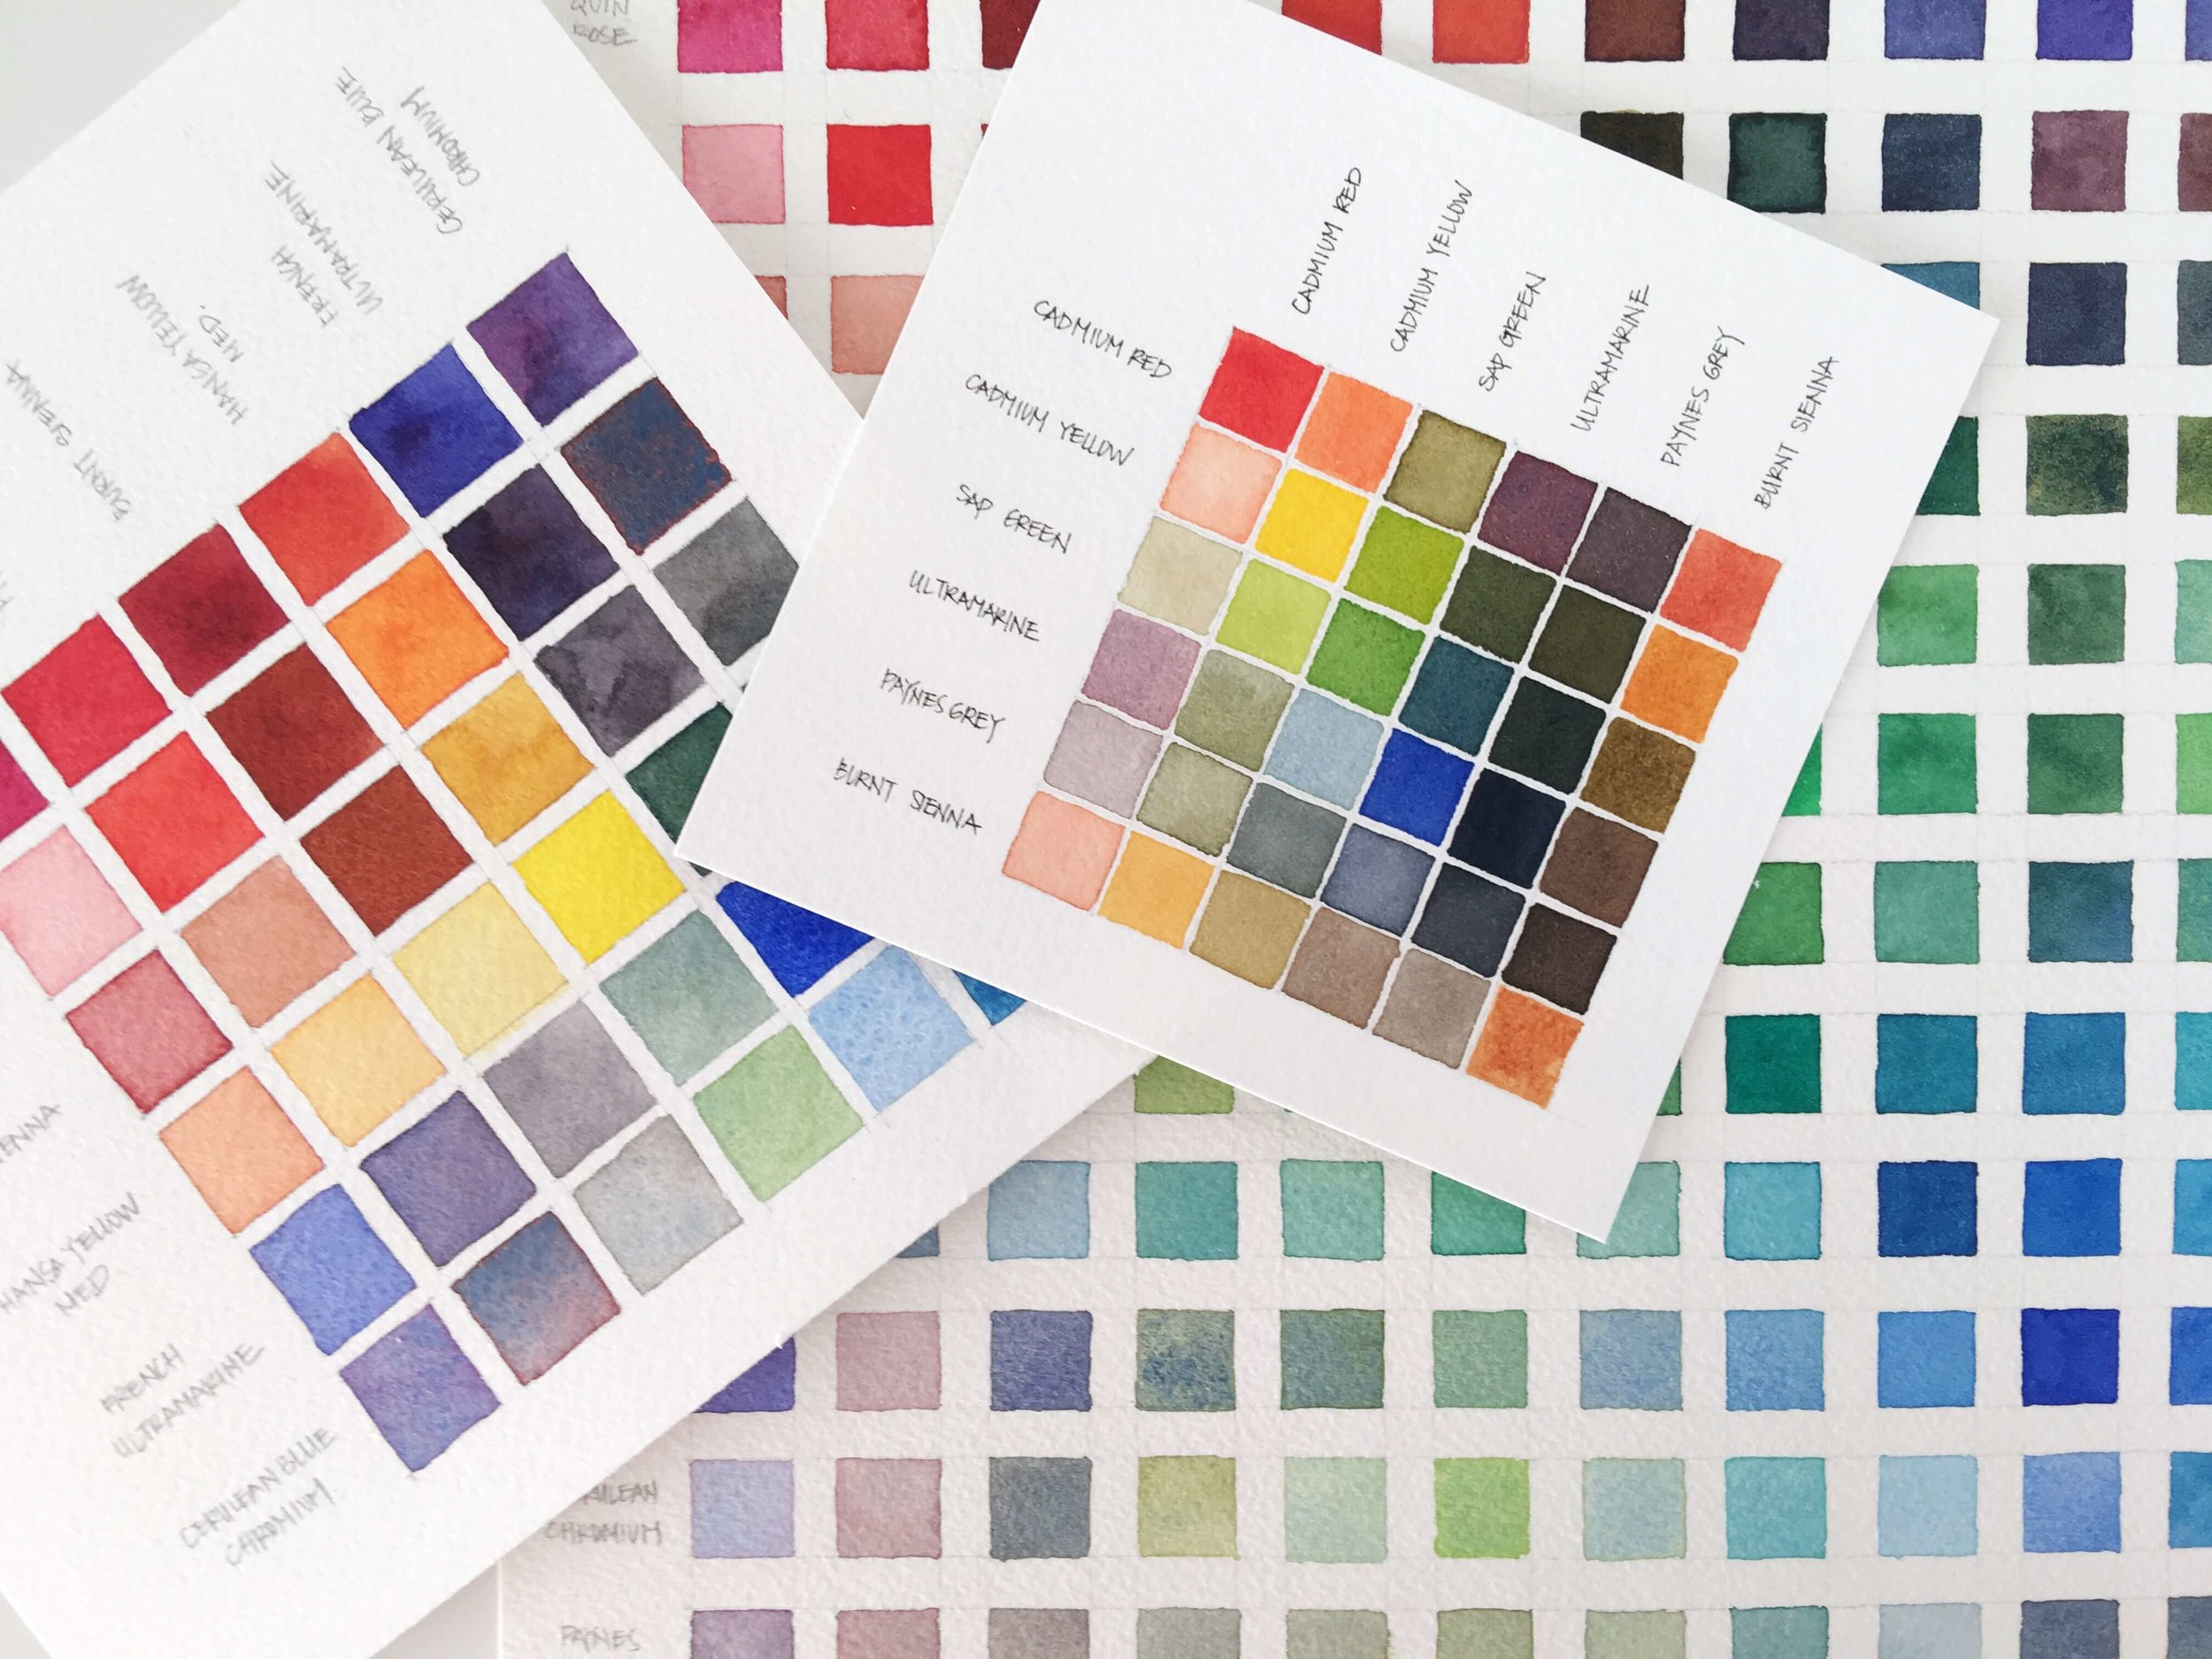 5 types of watercolor charts type 4 color mixing chart rae lily 5 types of watercolor charts type 4 color mixing chart geenschuldenfo Image collections